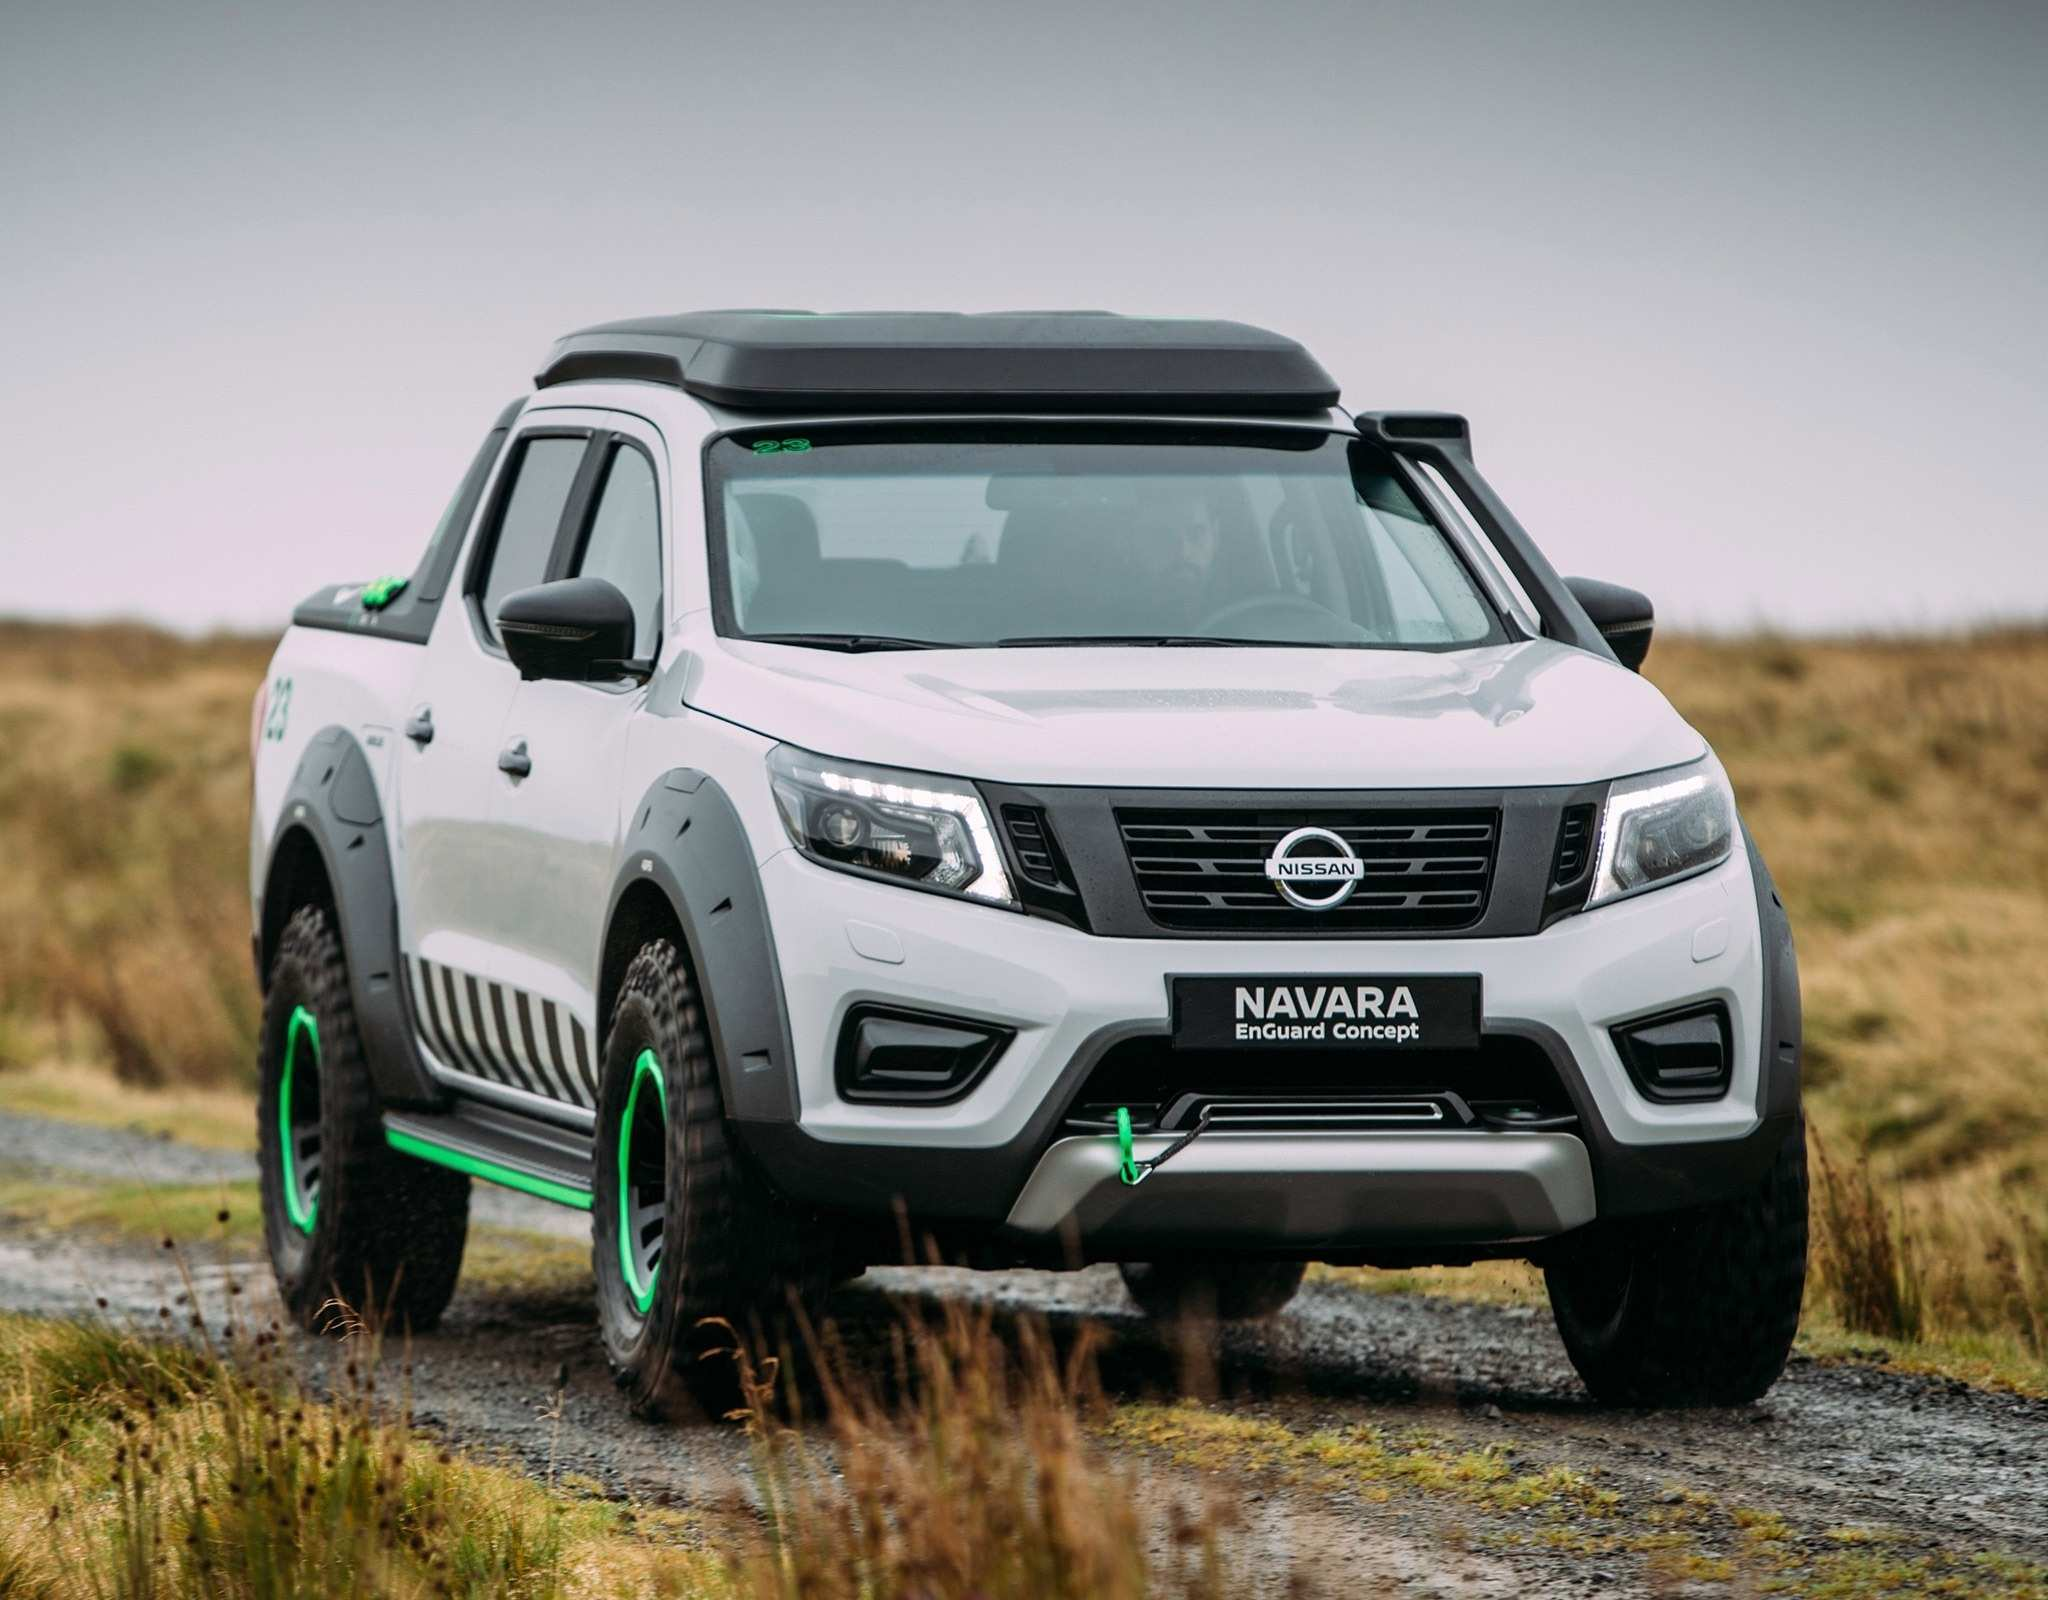 48 Best Review 2020 Nissan Navara 2020 Interior by 2020 Nissan Navara 2020